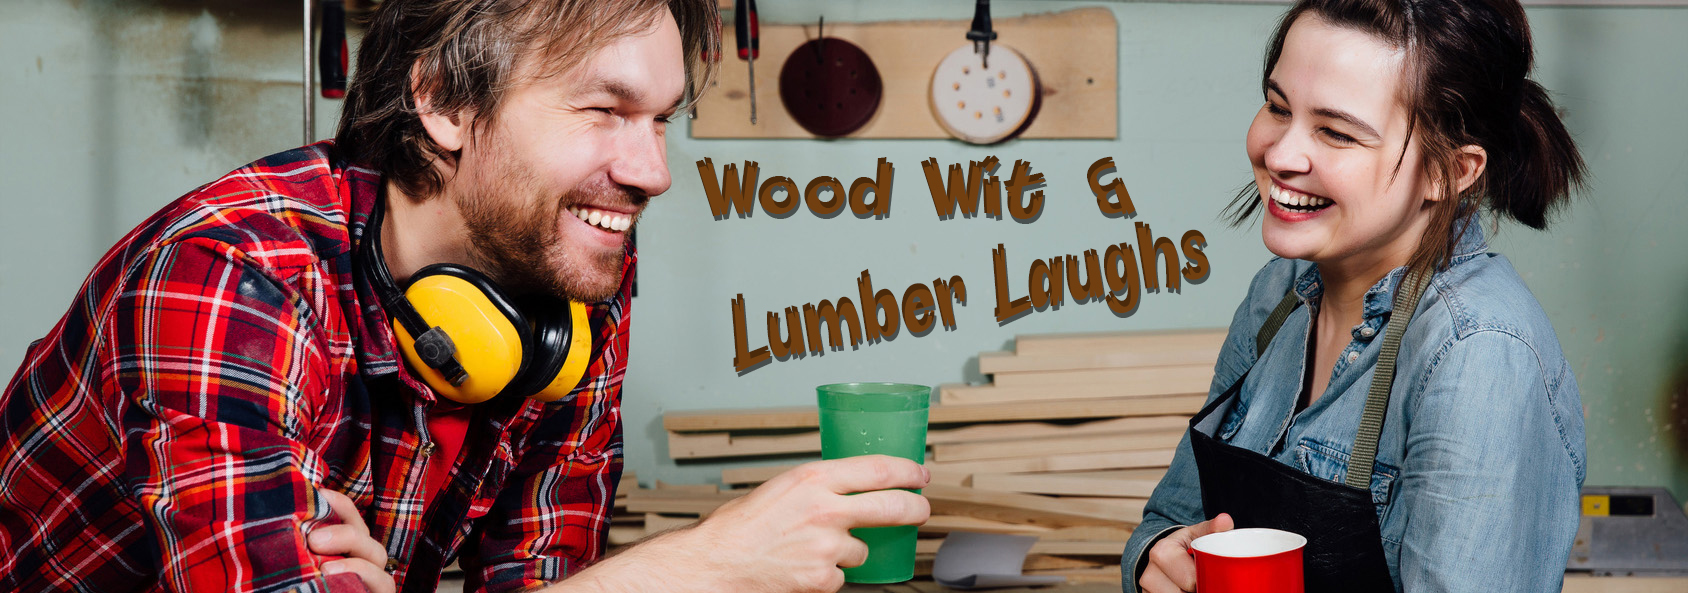 Wood Wit & Lumber Laughs